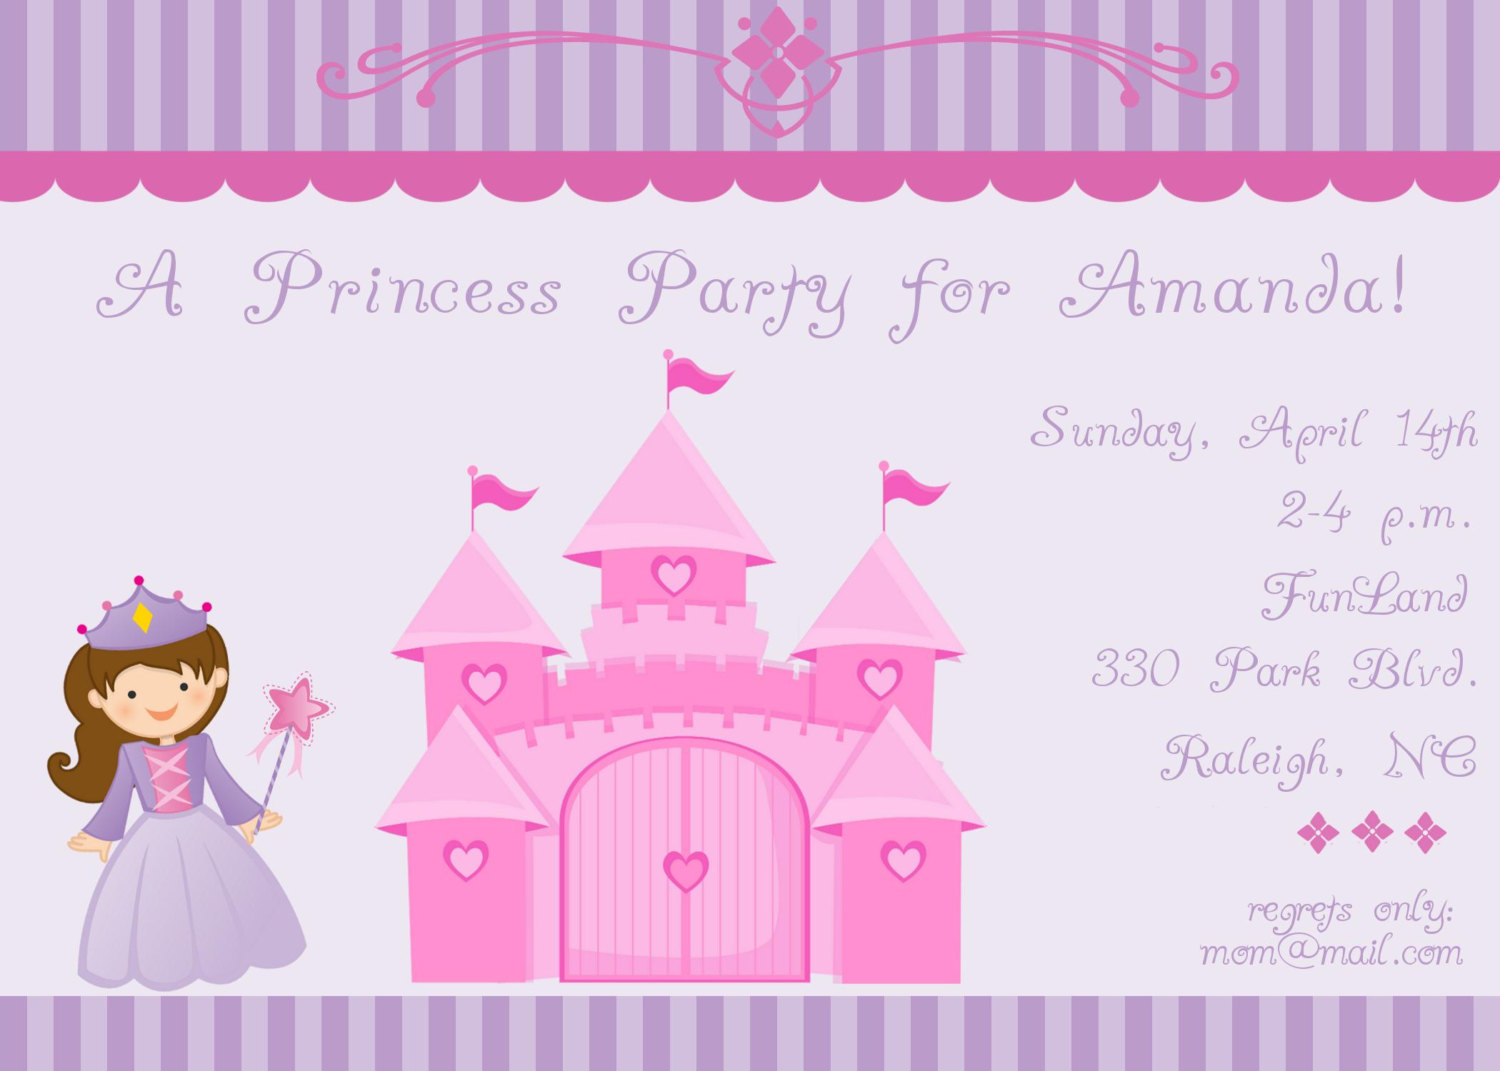 princess birthday invitation card design ; princess-birthday-party-invitations-by-way-of-applying-easy-on-the-eye-style-creation-in-your-Birthday-Invitation-Cards-invitation-card-design-19